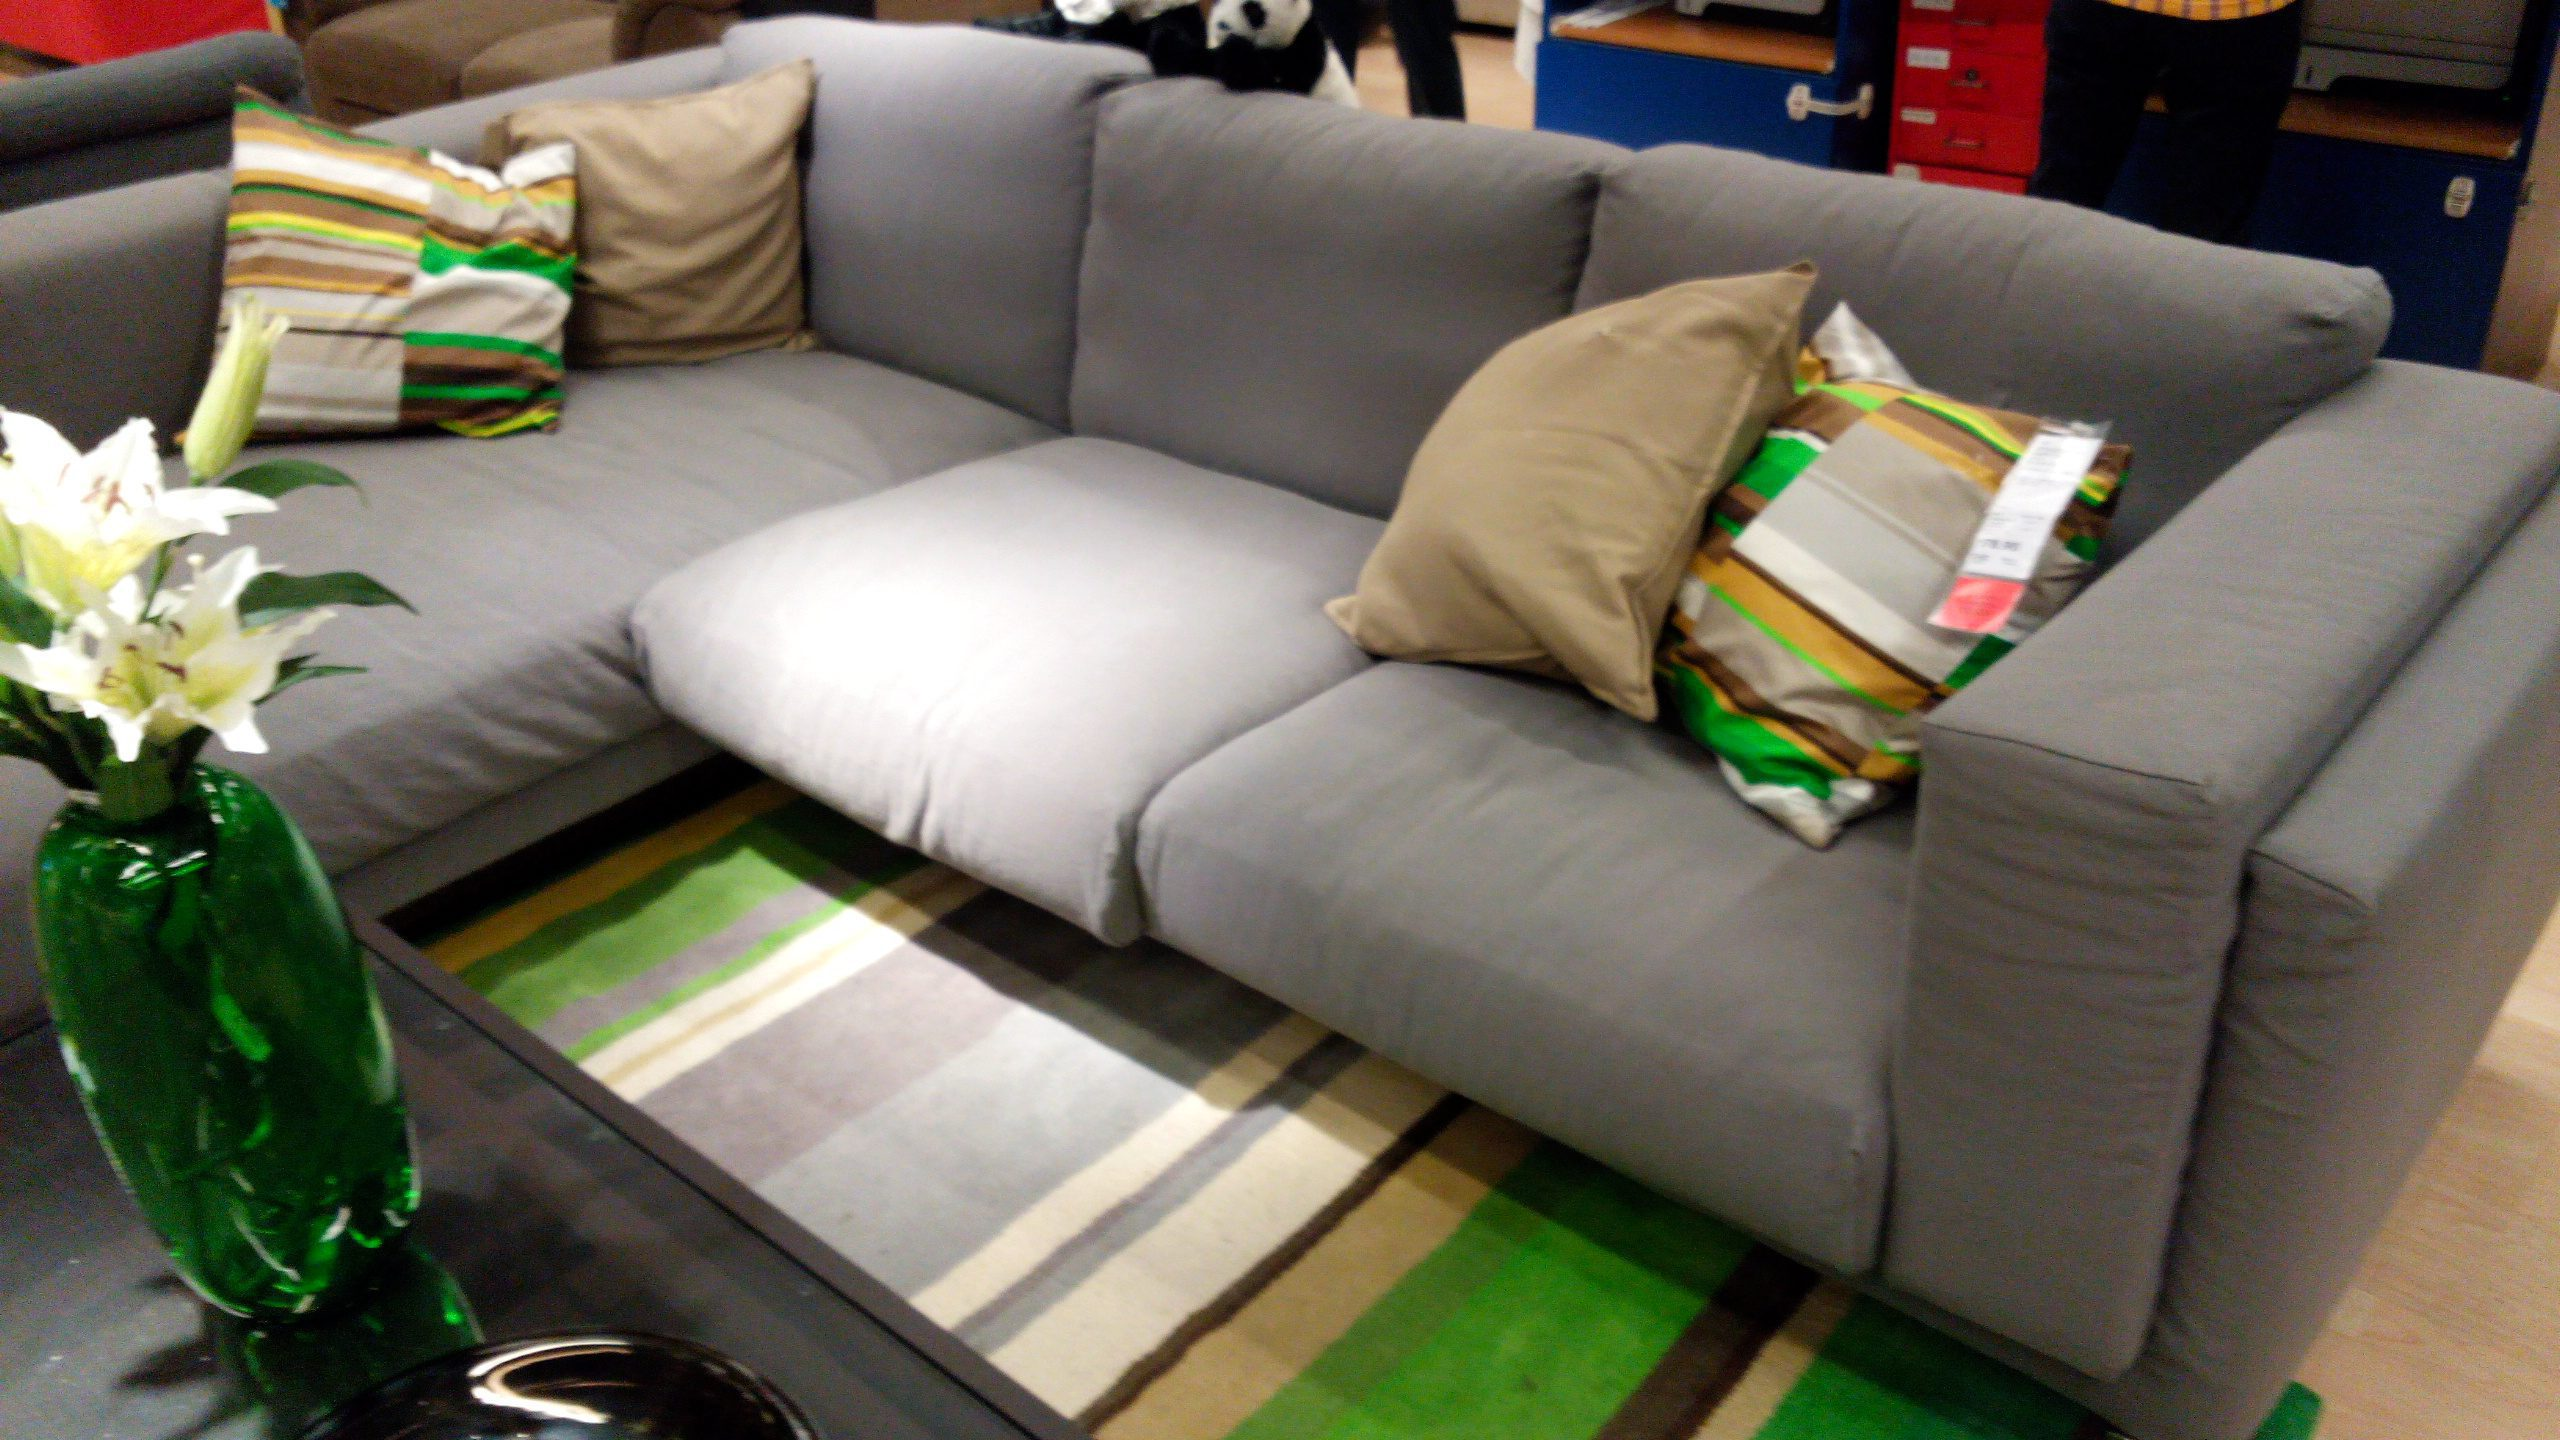 Fine Ikea Nockeby Sofa Review New Ikea Couch Series Mid 2014 Alphanode Cool Chair Designs And Ideas Alphanodeonline